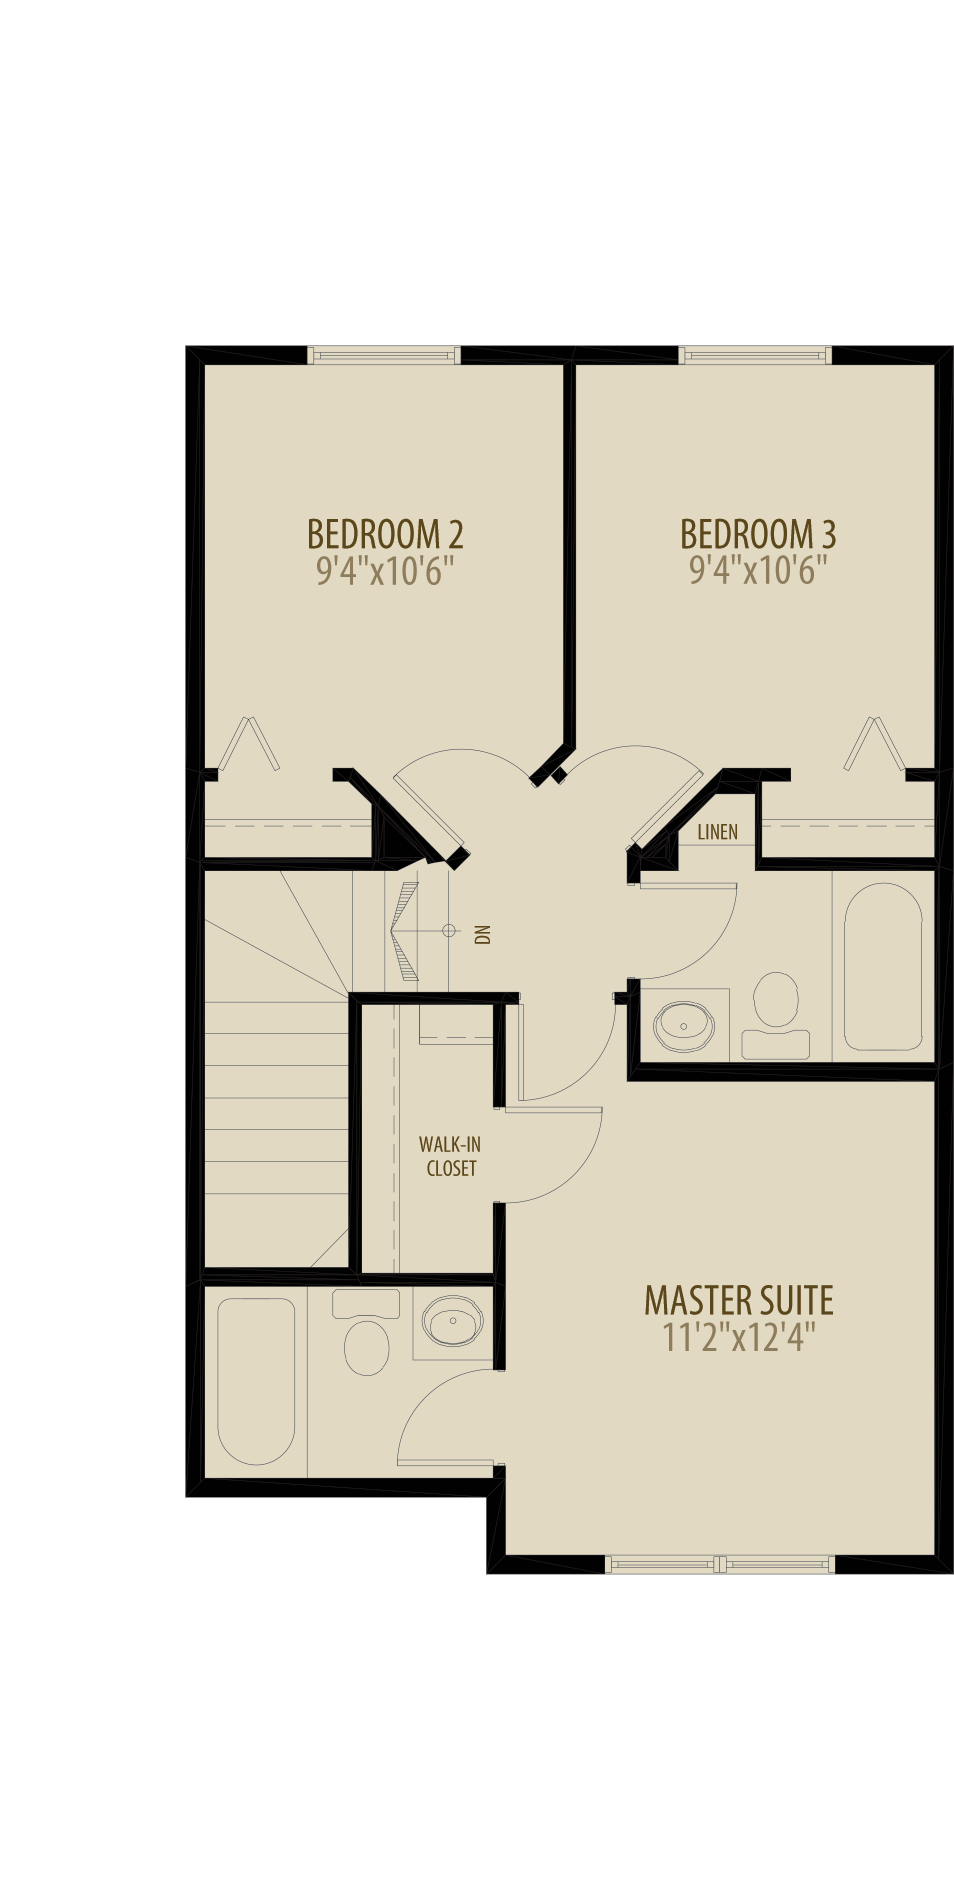 Expanded Bedrooms Adds 32Sq Ft